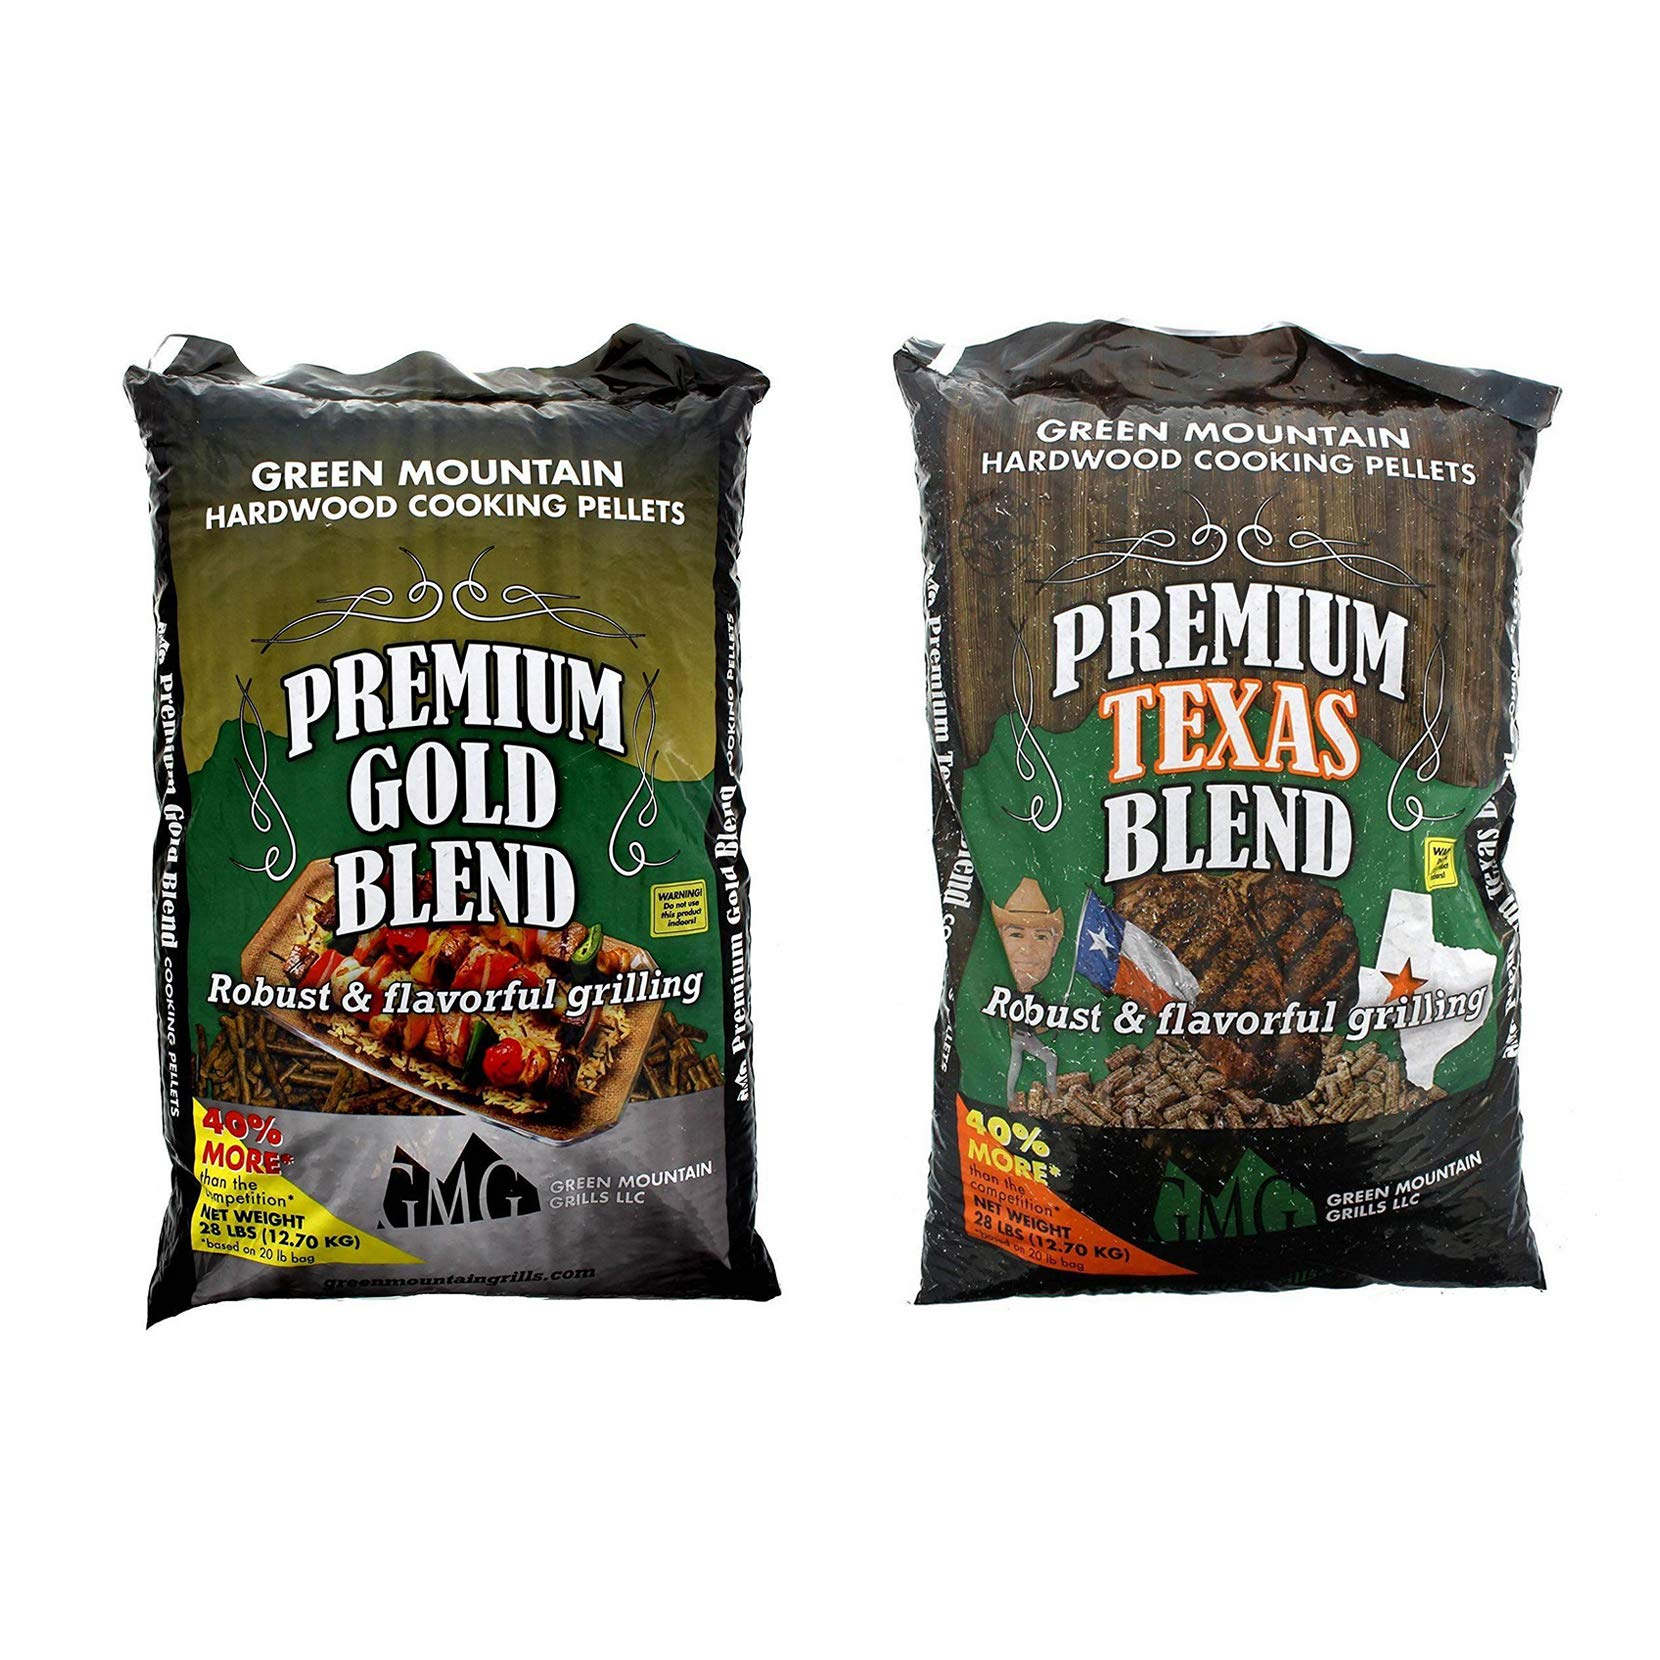 Green Mountain Premium Gold Blend Grilling Pellets, Premium Texas Blend Pellets by Green Mountain Grills